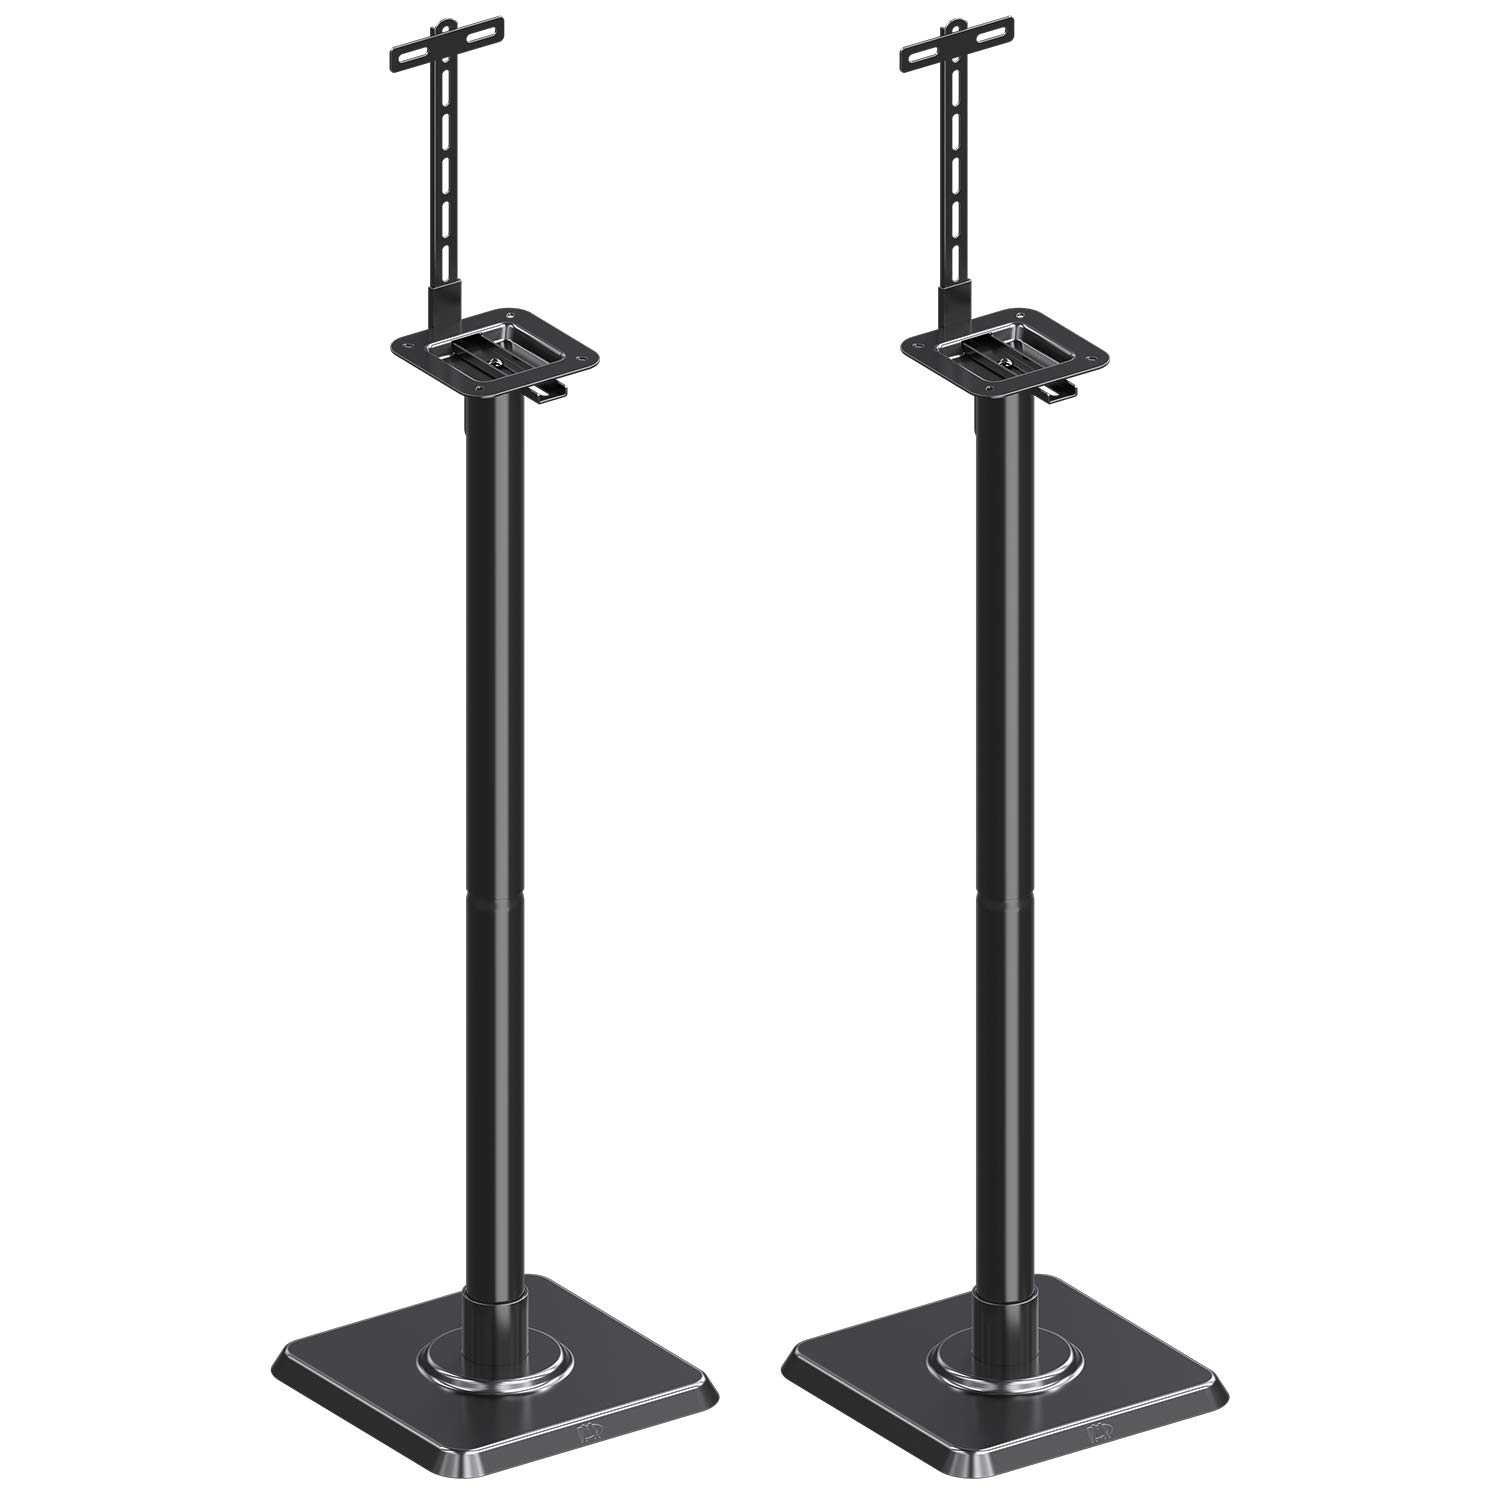 Mounting Dream Speaker Stand Speaker Floor Stand Sound Stand Mount Built-in Cable Management Universal, 11LBS Capacity Per Stand with Adjustable Post Assembly for Surround Sound (2 Set) by Mounting Dream